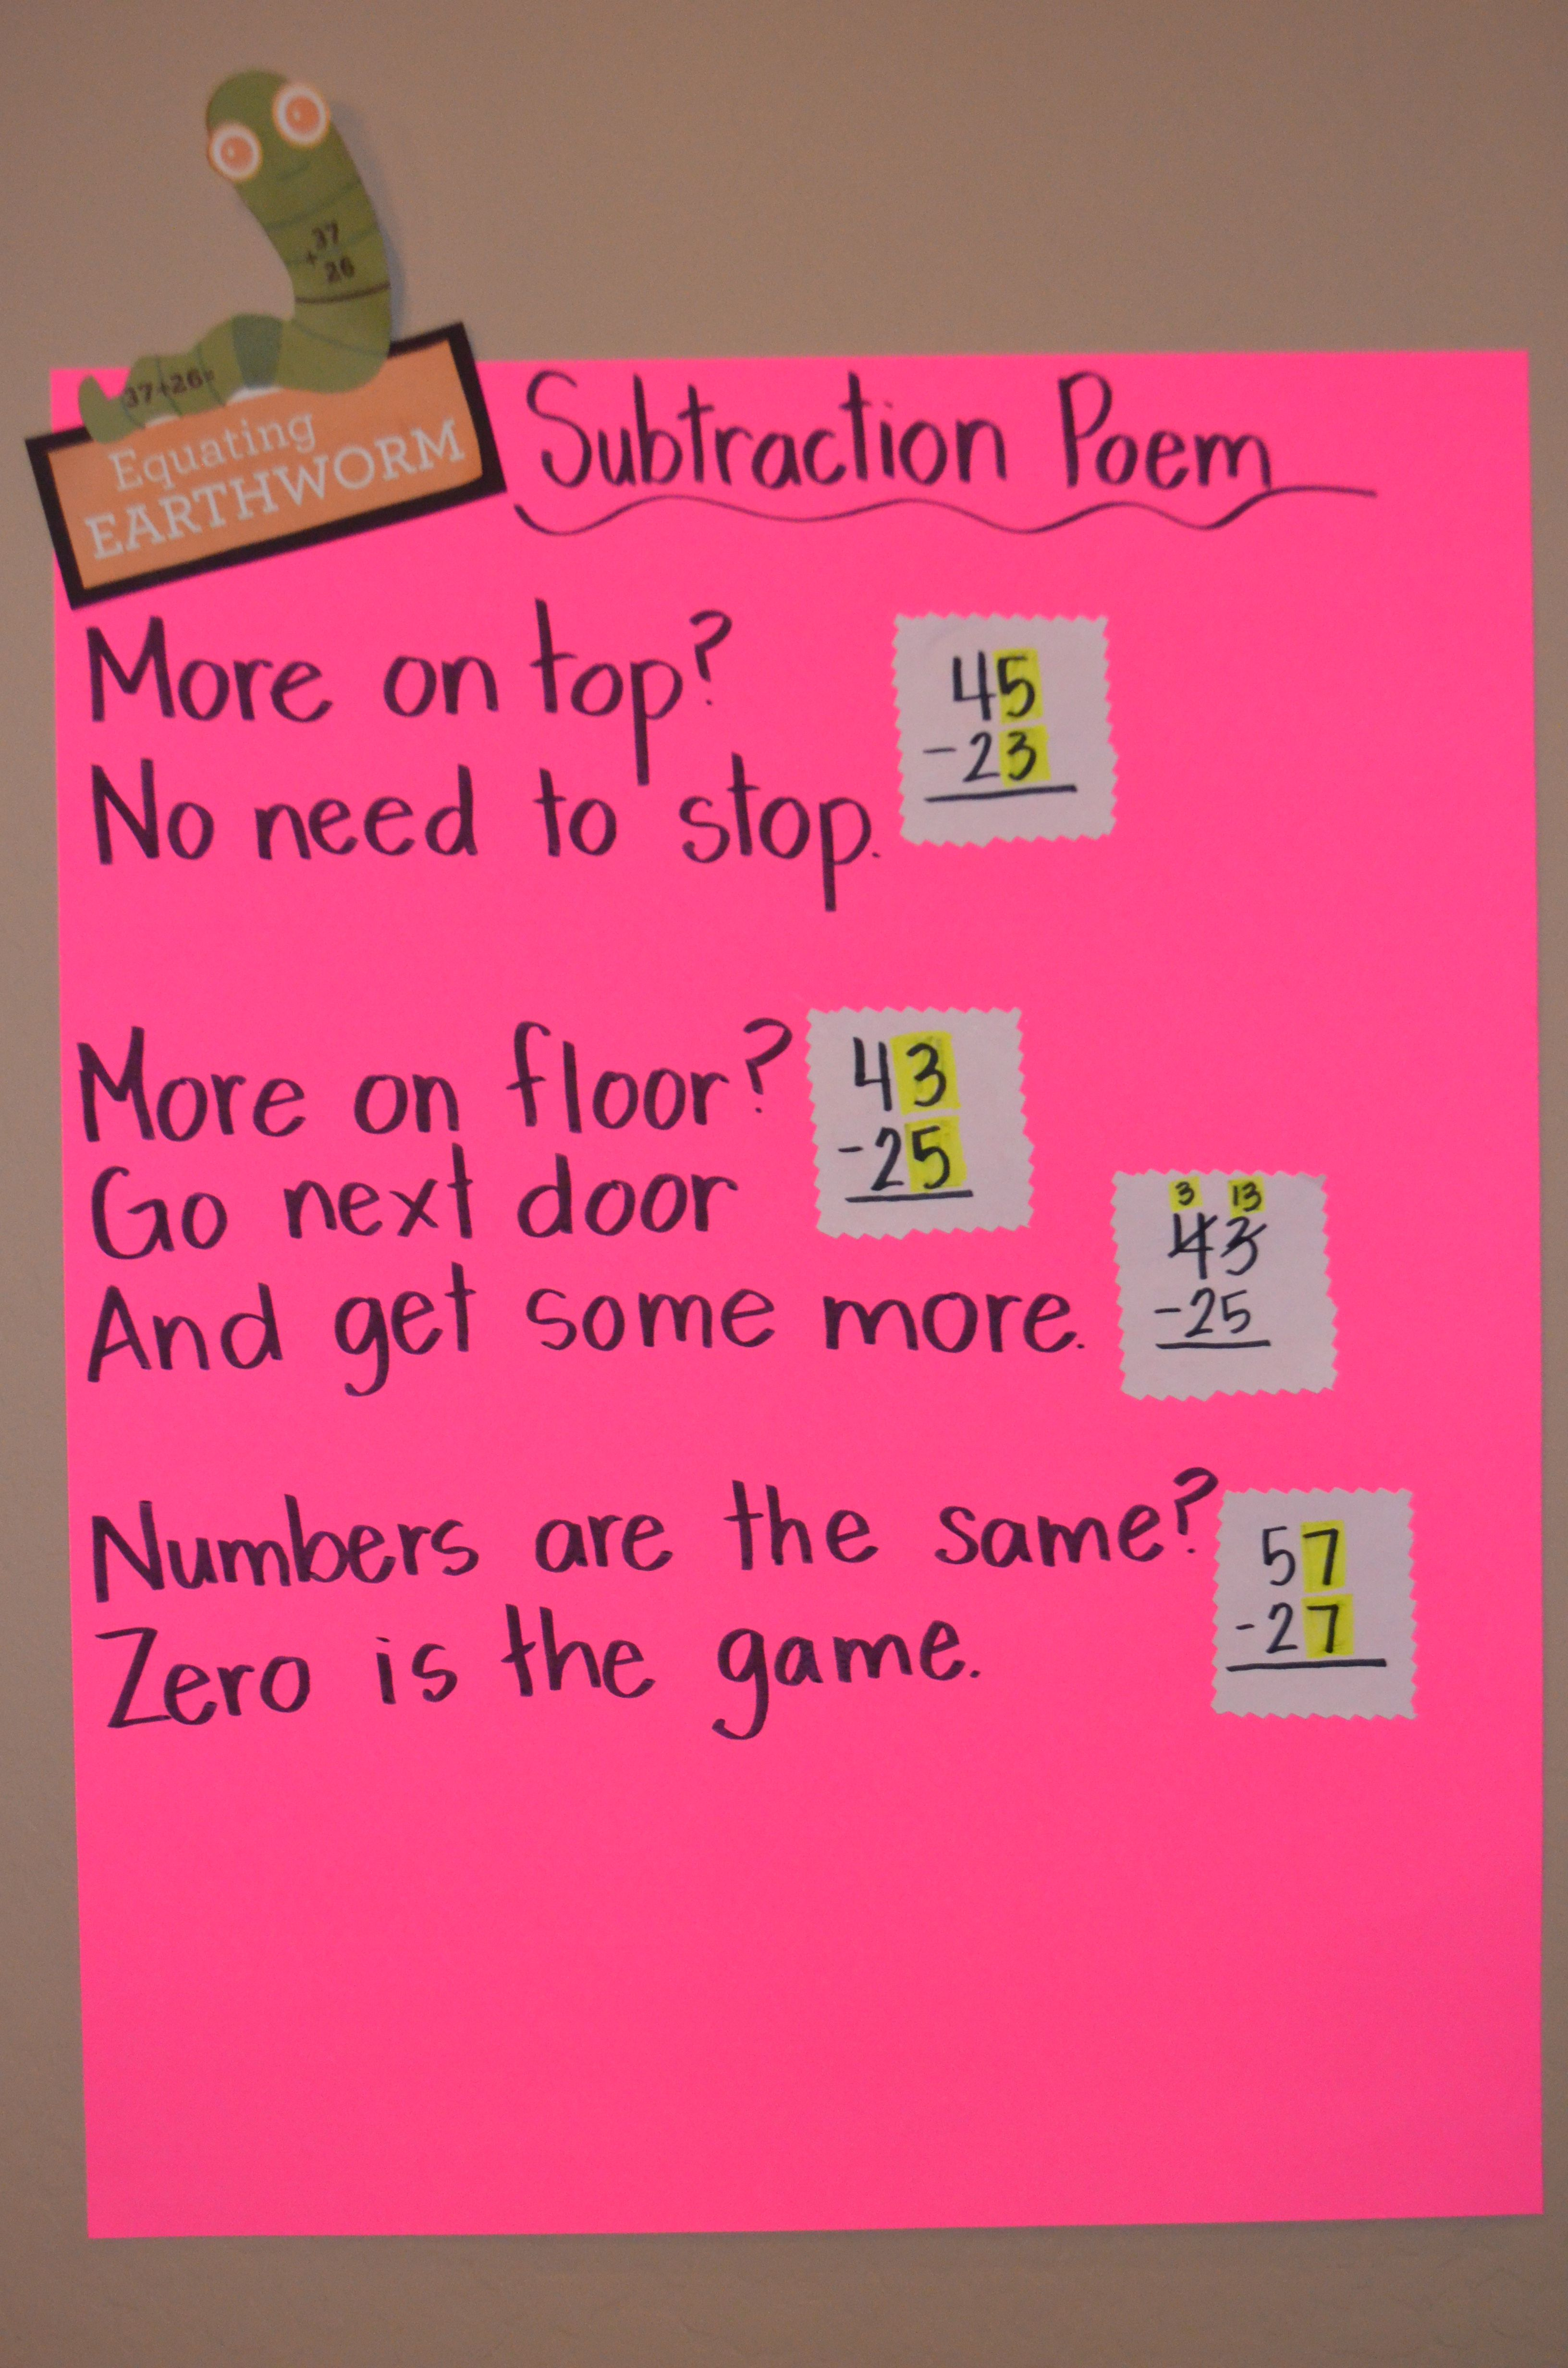 Subtraction Poem Equating Earthworm Math Intervention Strategy Number Sentence Equations